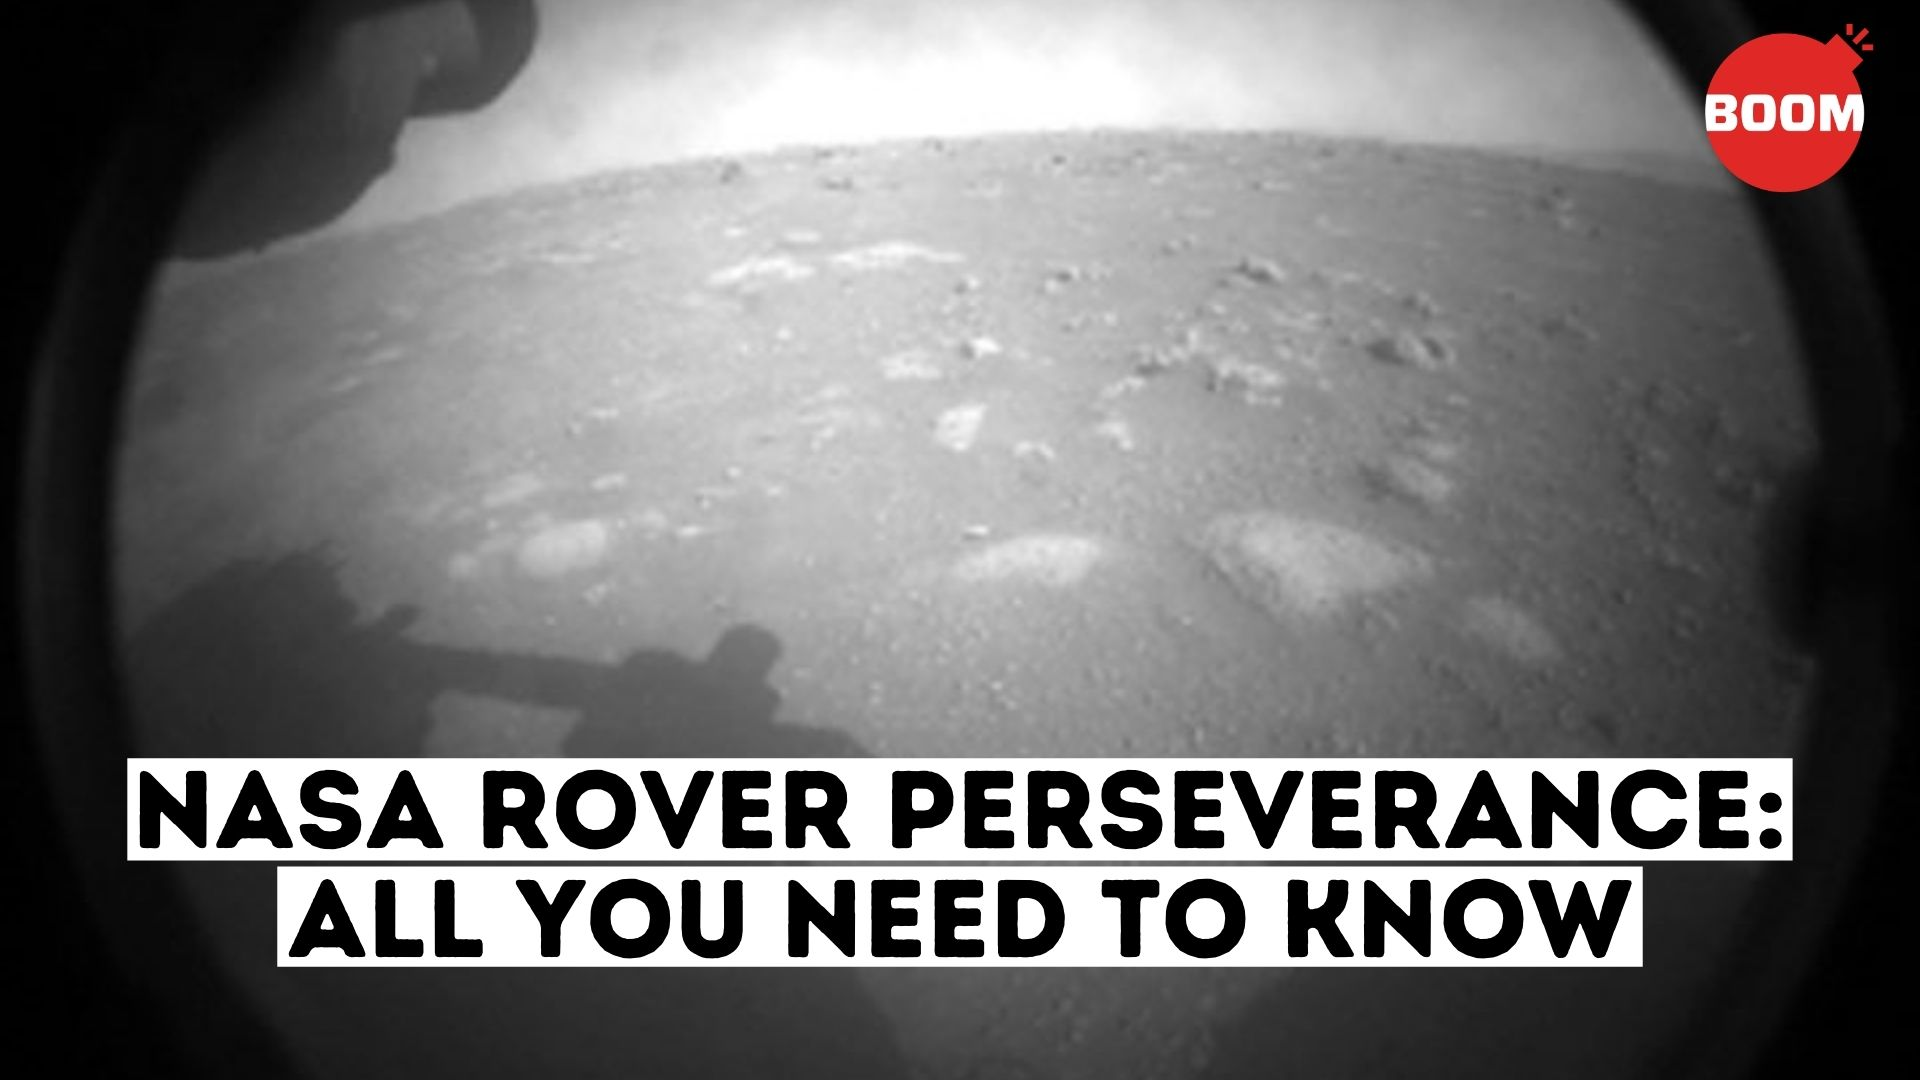 NASA Rover Perseverance: All You Need To Know   BOOM   Mars Mission